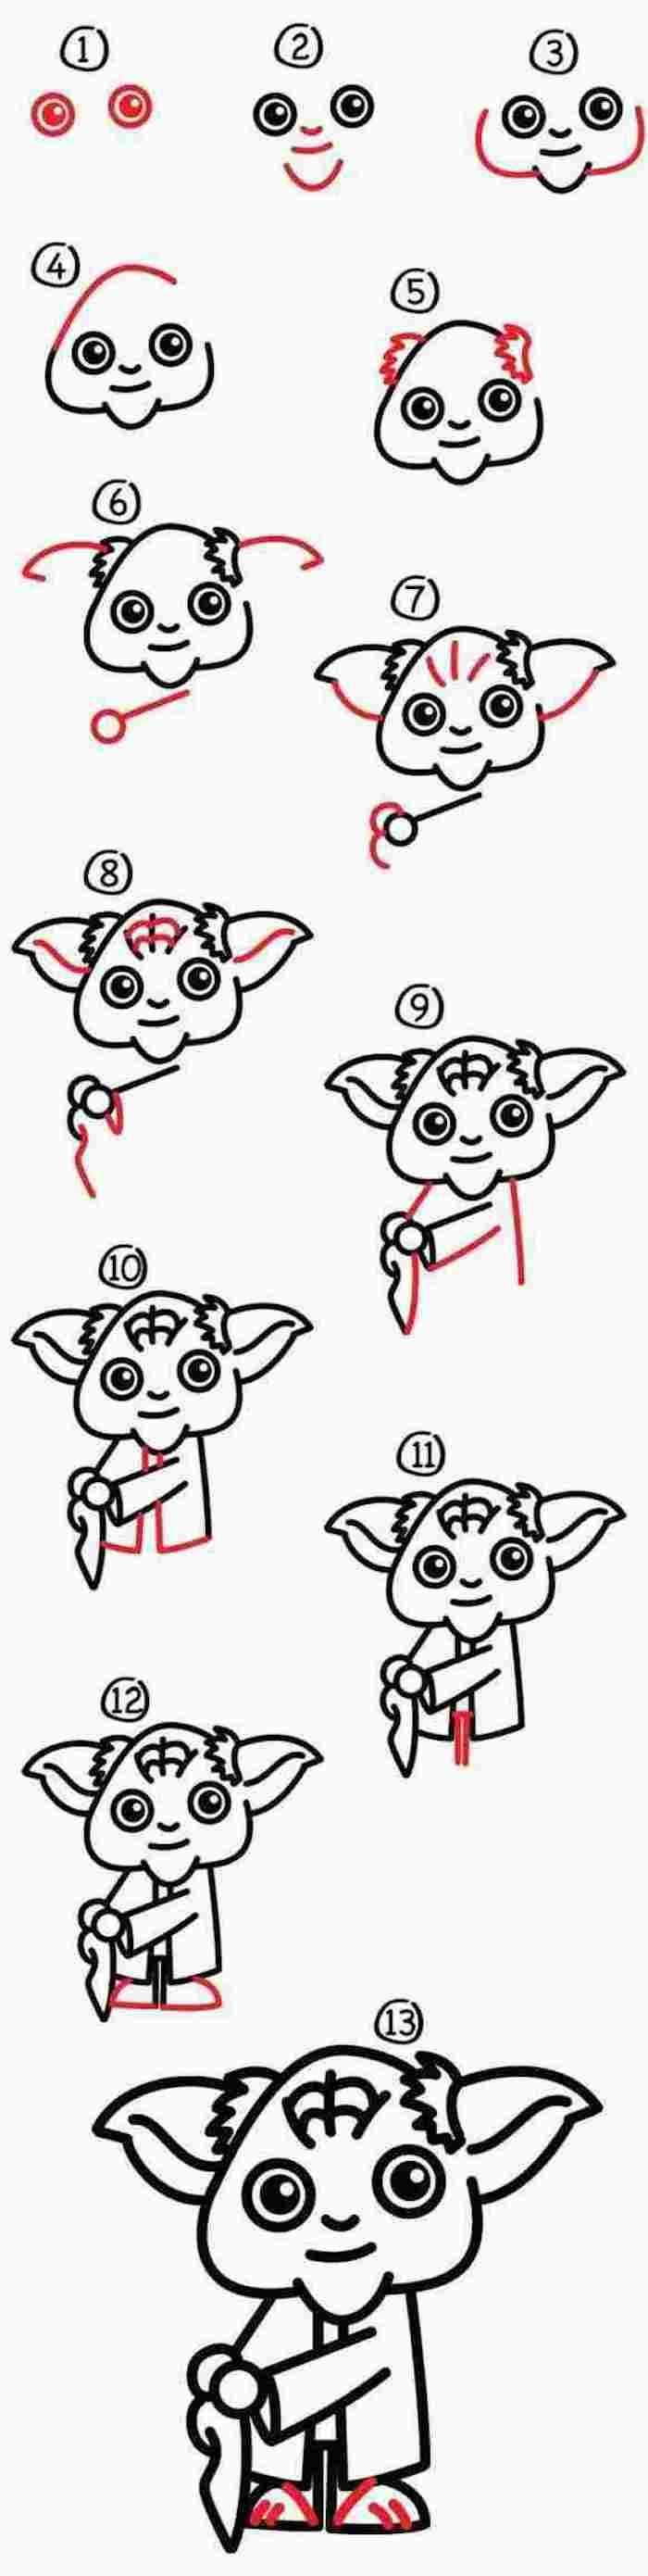 how to draw yoda in thirteen steps, step by step diy tutorial, black and white sketch, white background, cute drawings for kids